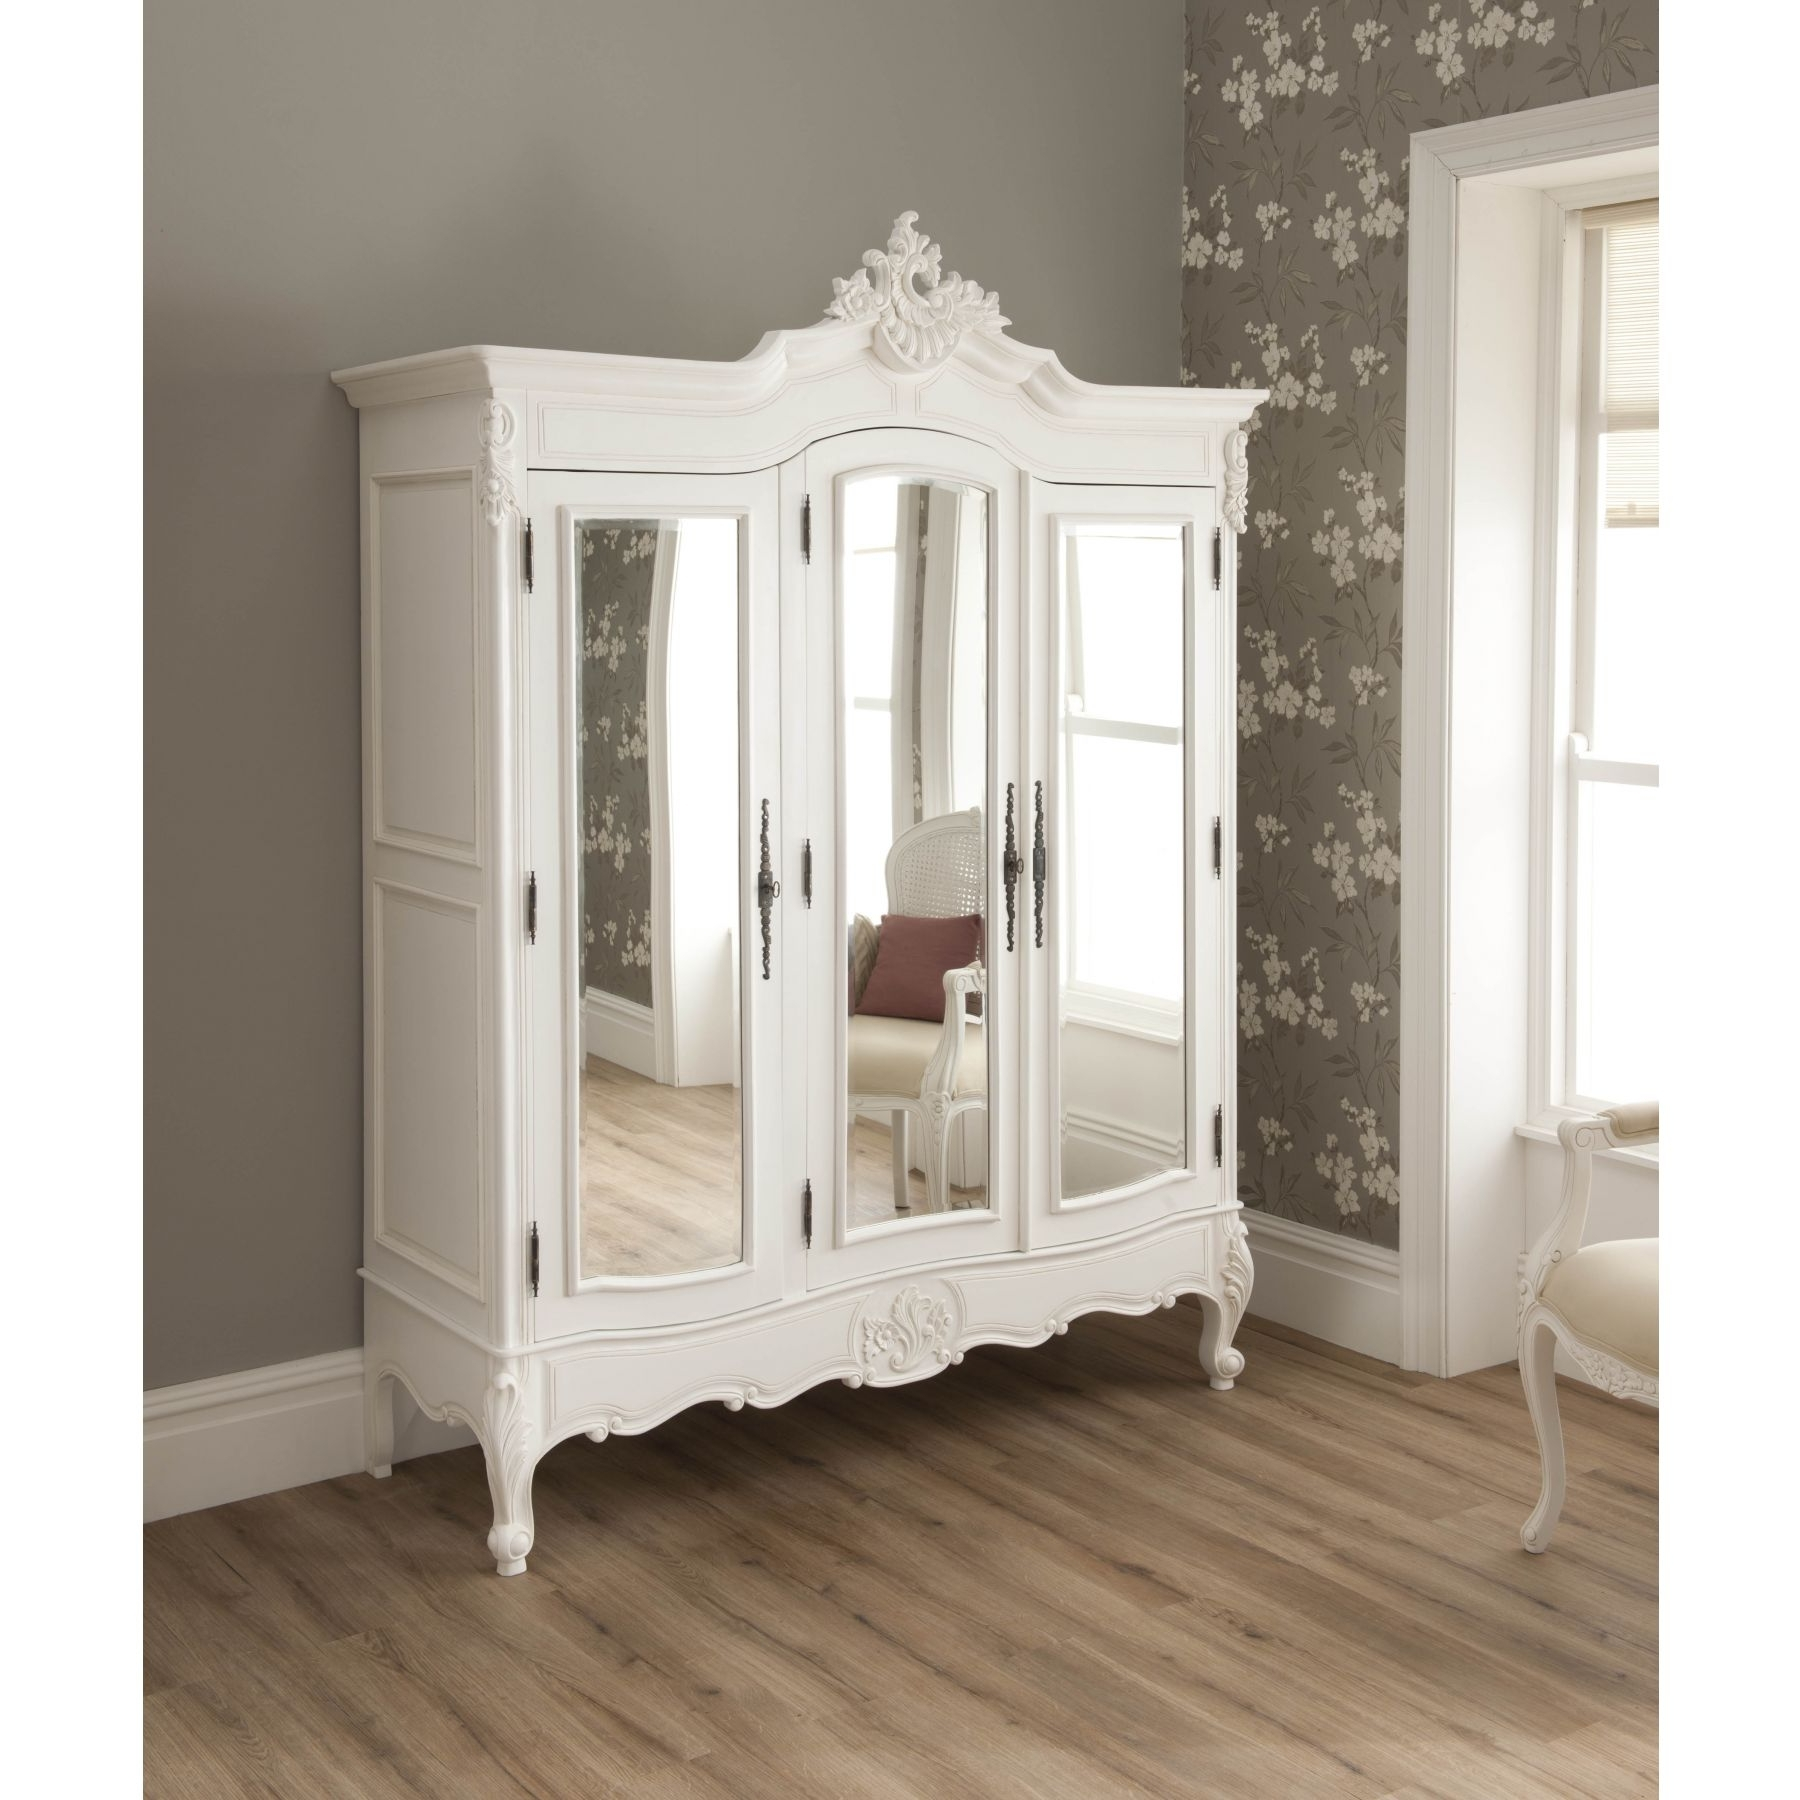 Popular White French Style Wardrobes Intended For La Rochelle Shabby Chic Antique Style Wardrobe (View 5 of 15)